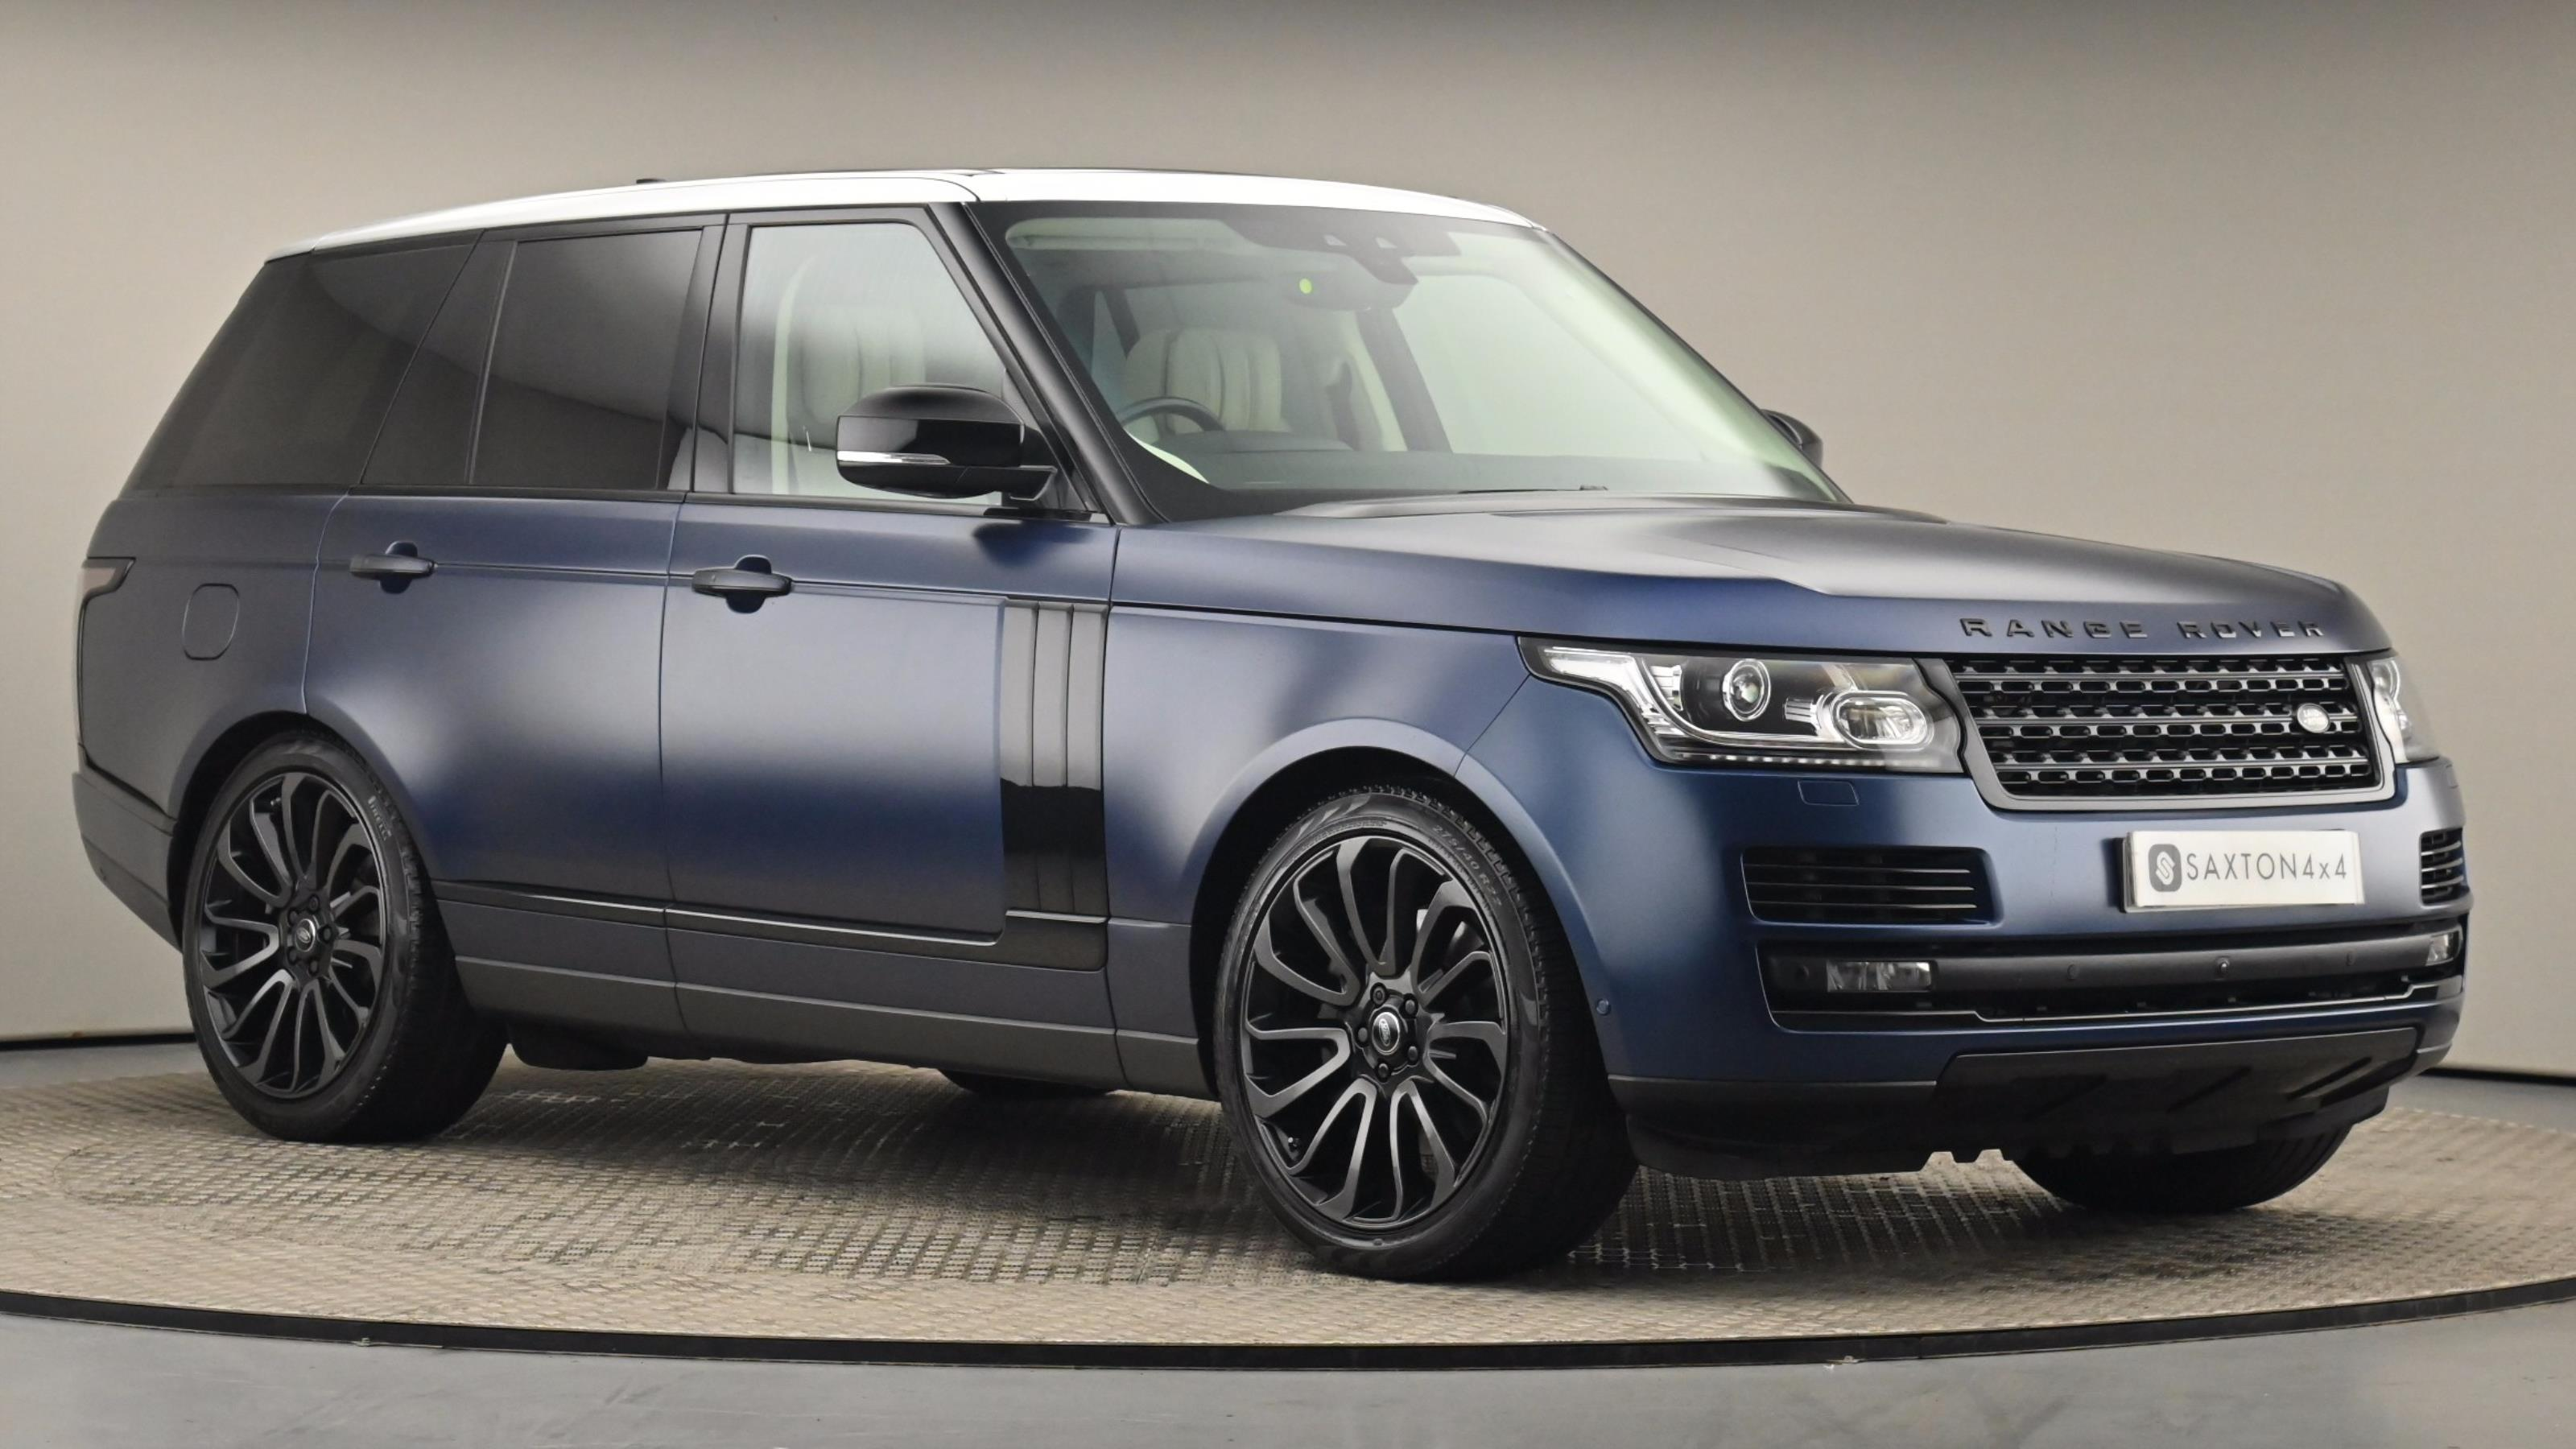 Used 2017 Land Rover RANGE ROVER 5.0 V8 Supercharged Autobiography 4dr Auto [SS] at Saxton4x4